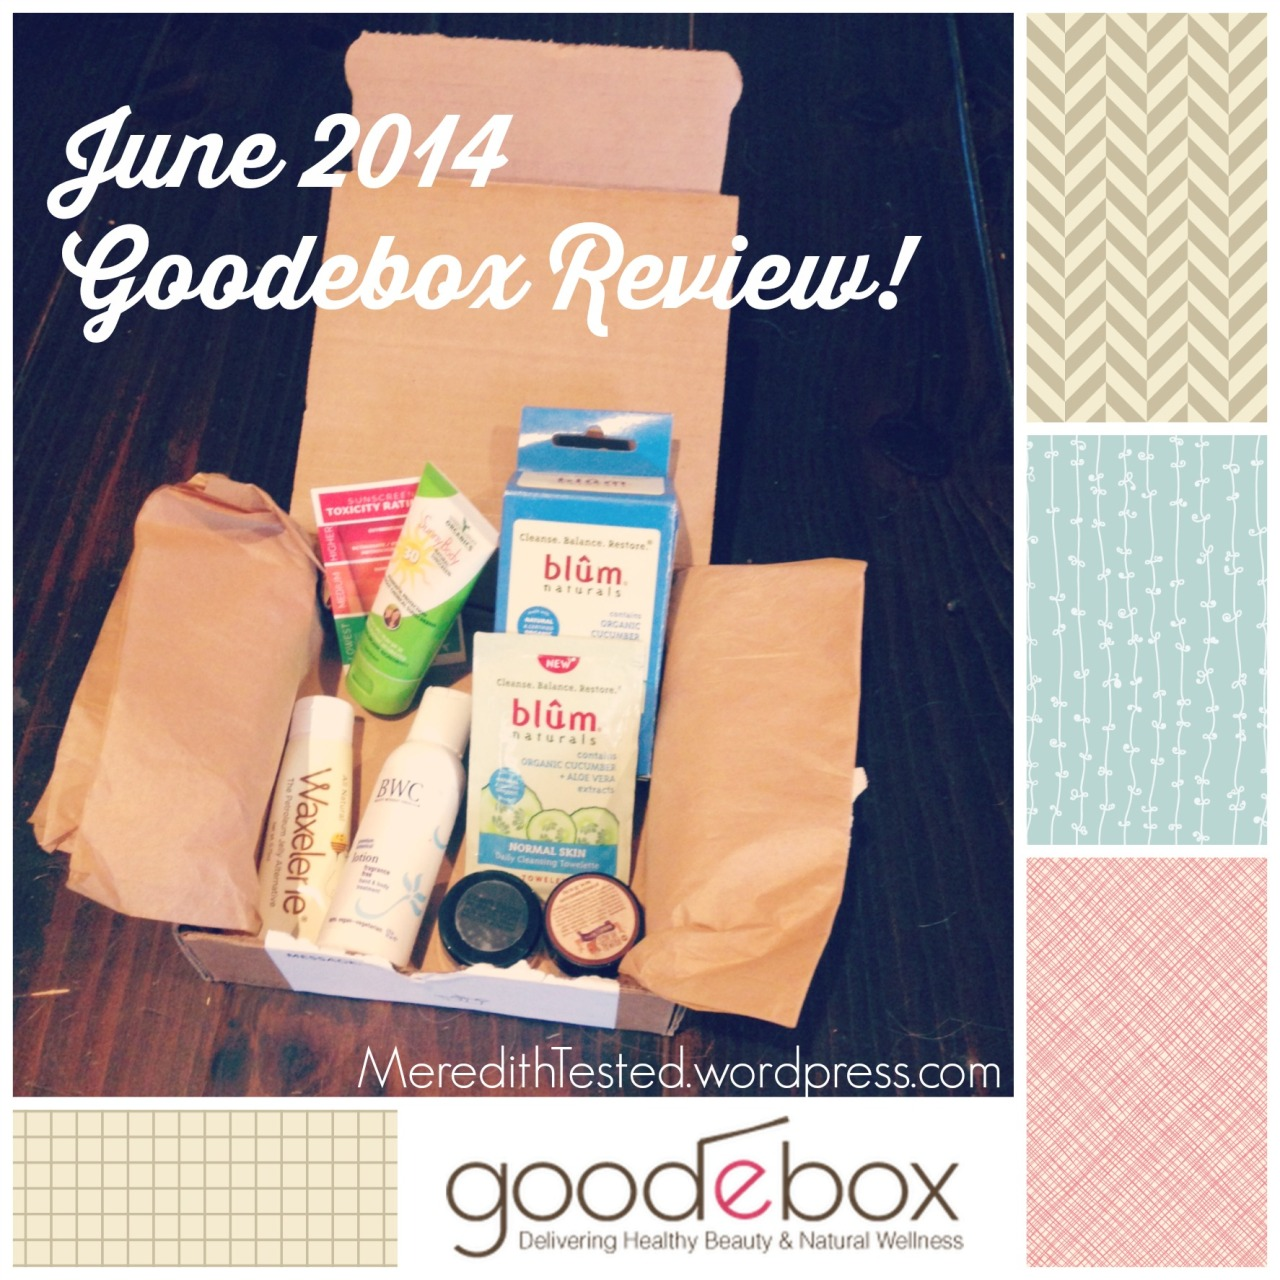 Goodebox Natural Wellness Products Subscription Box REVIEW by MeredithTested.wordpress.com